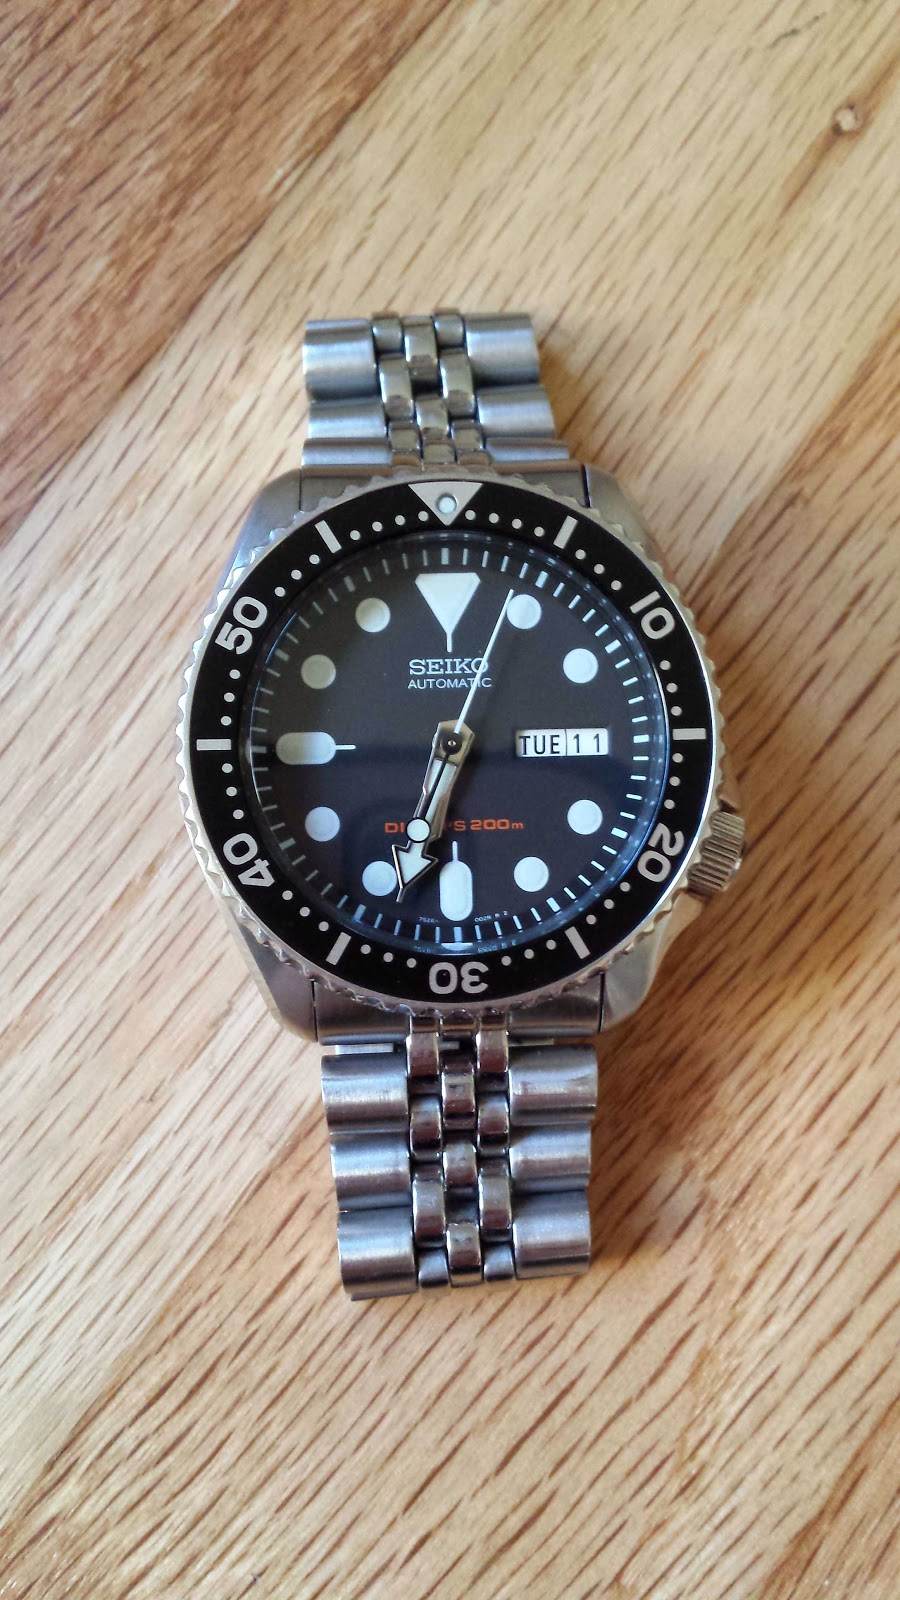 autom made watches rescue marathon tritium medium iso search swiss w milit watch s military diver divers shop automatic